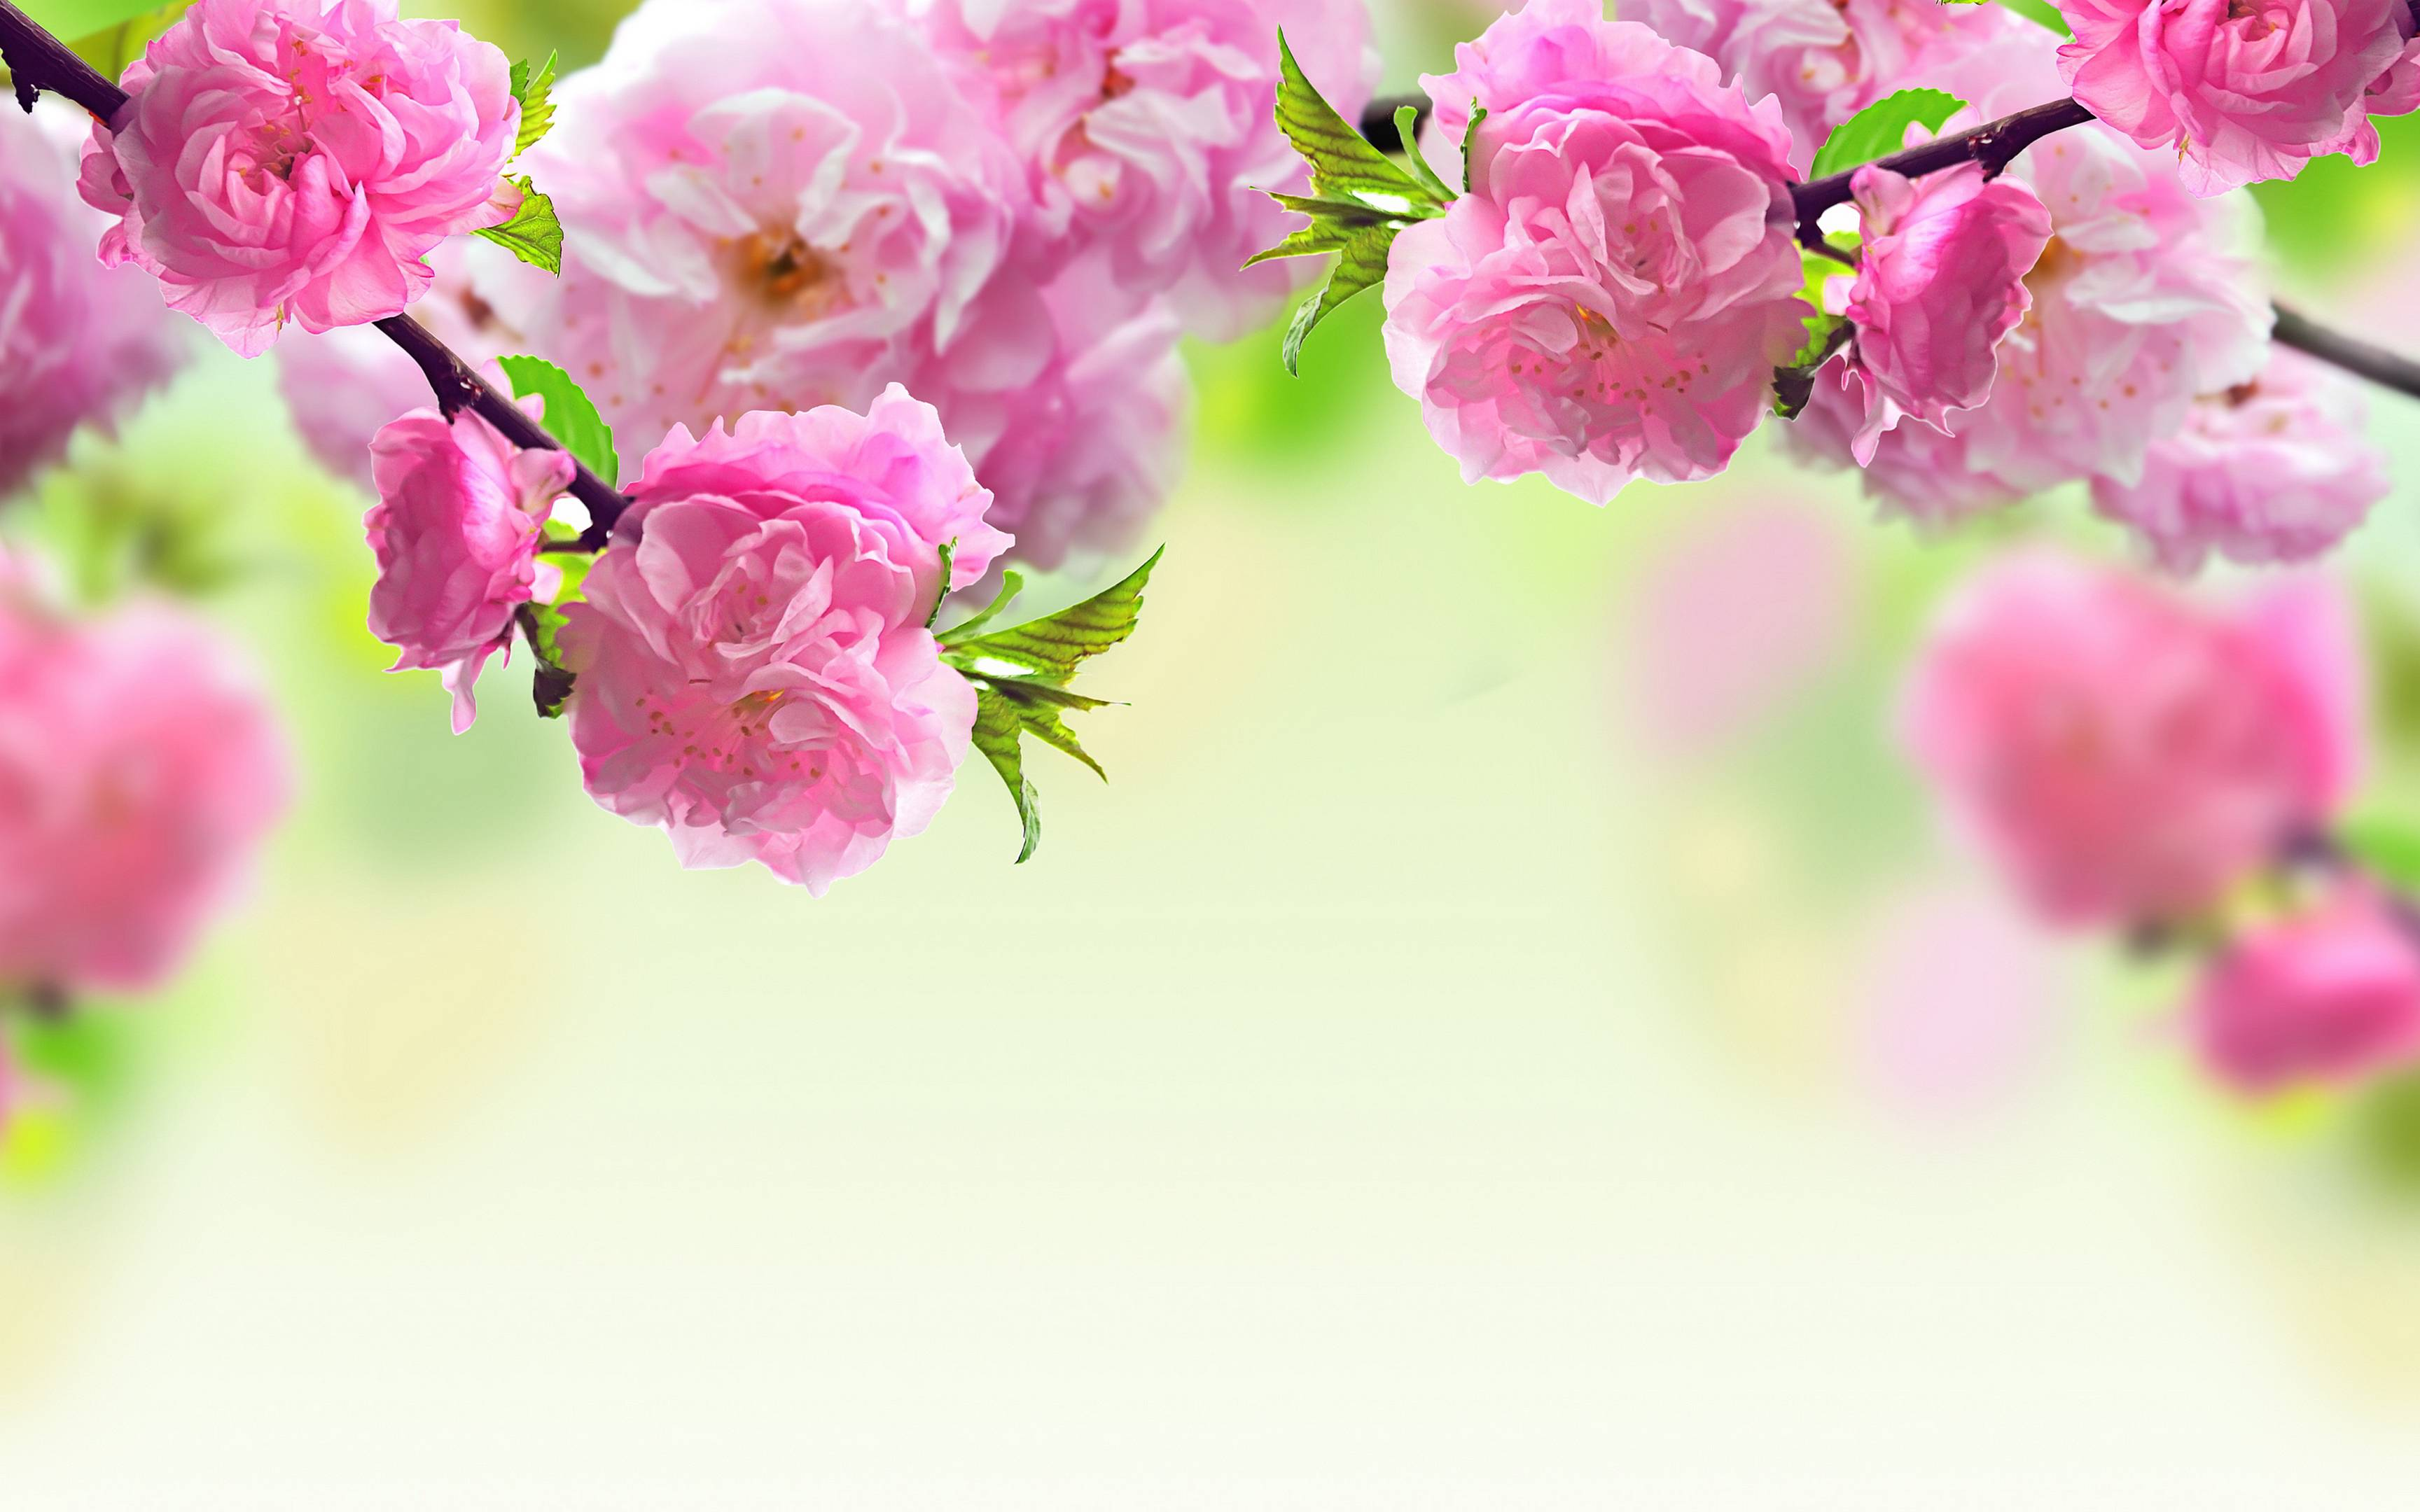 Spring Flower Wallpaper Backgrounds.